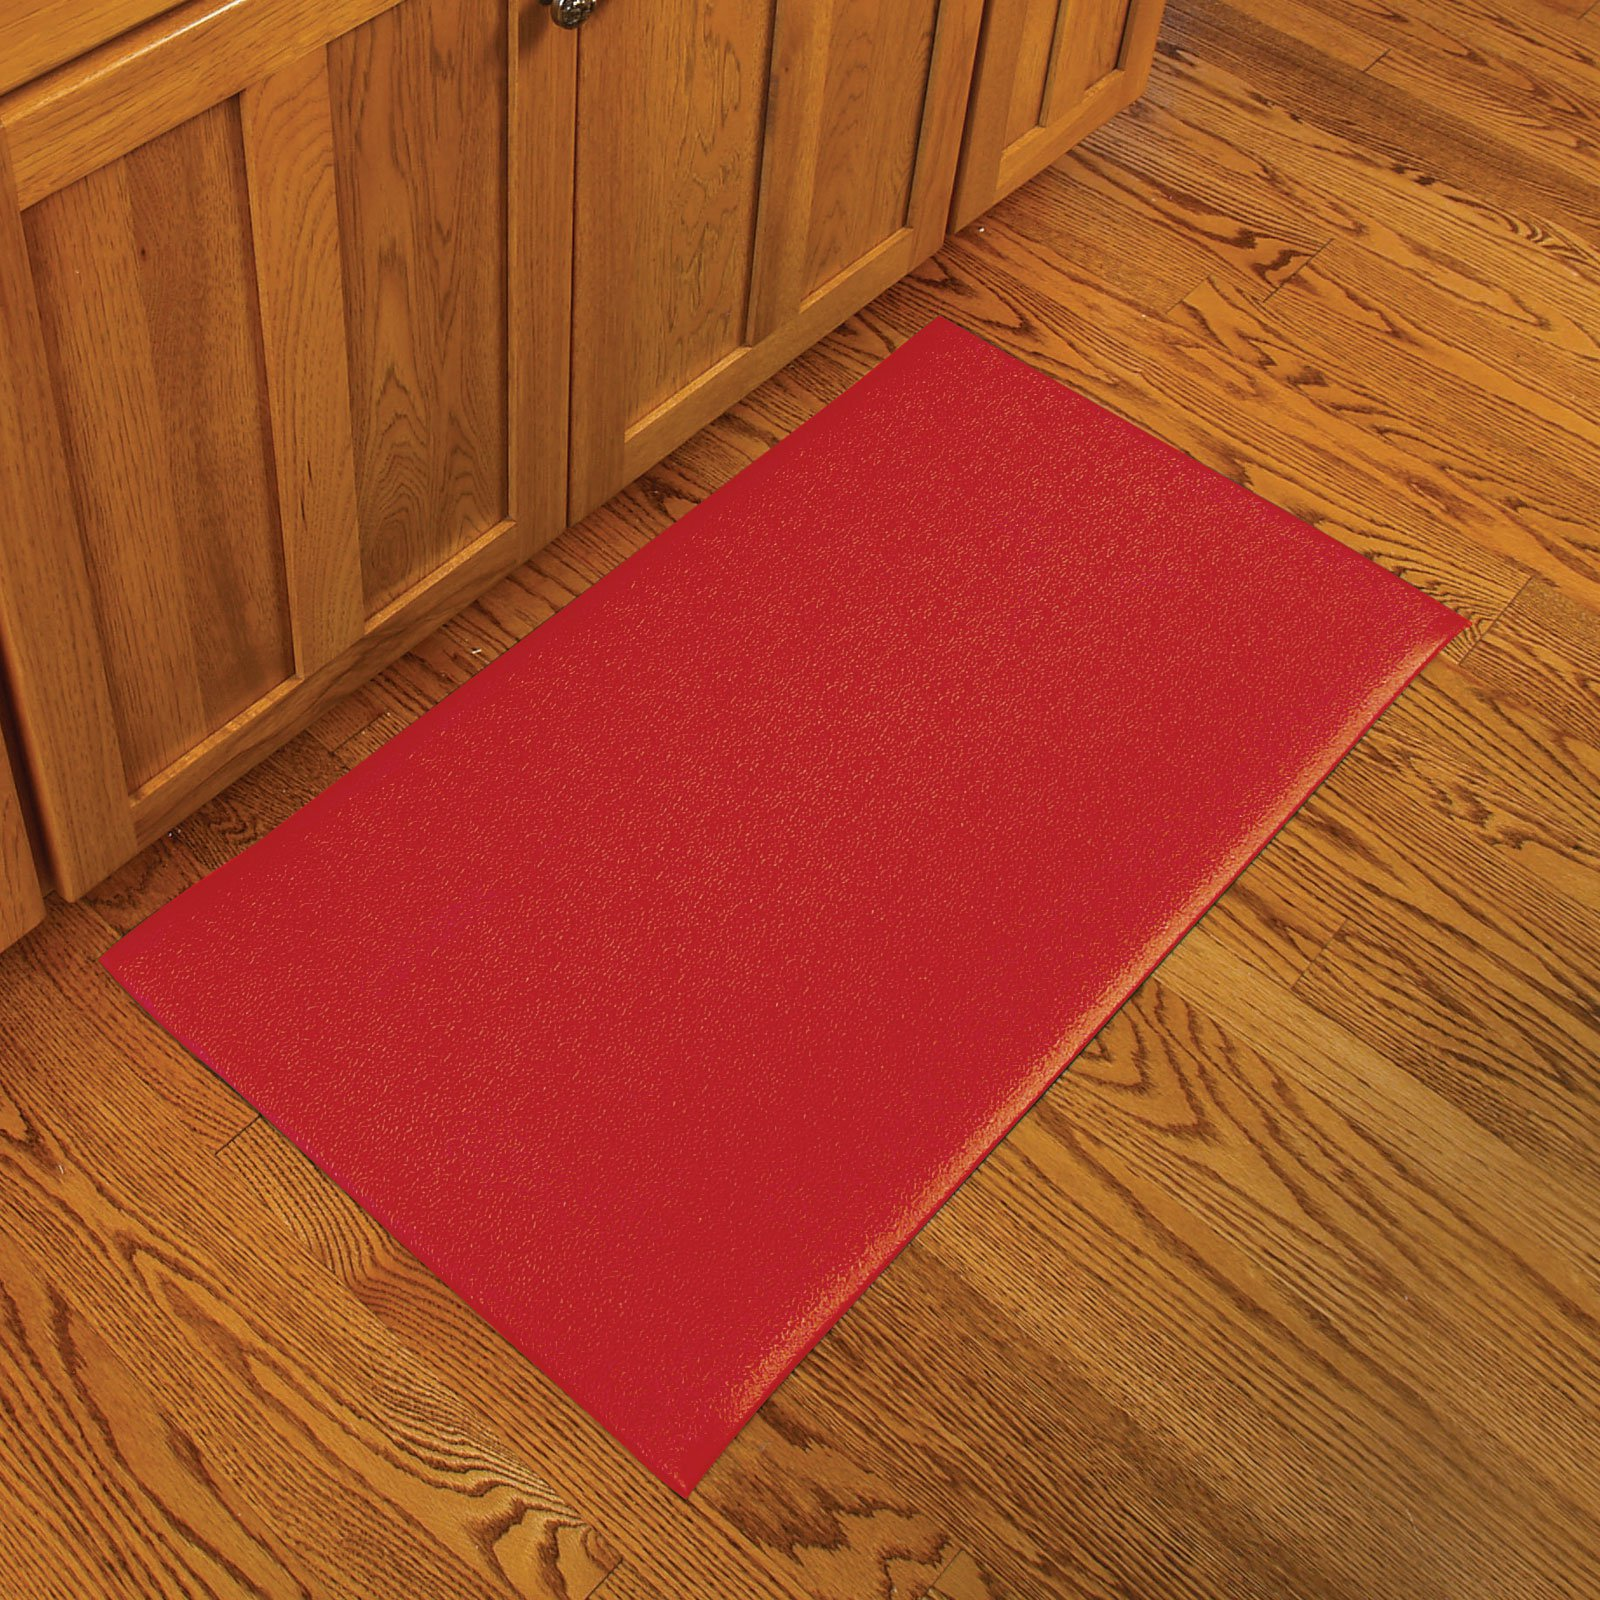 Red kitchen mat photo - 2